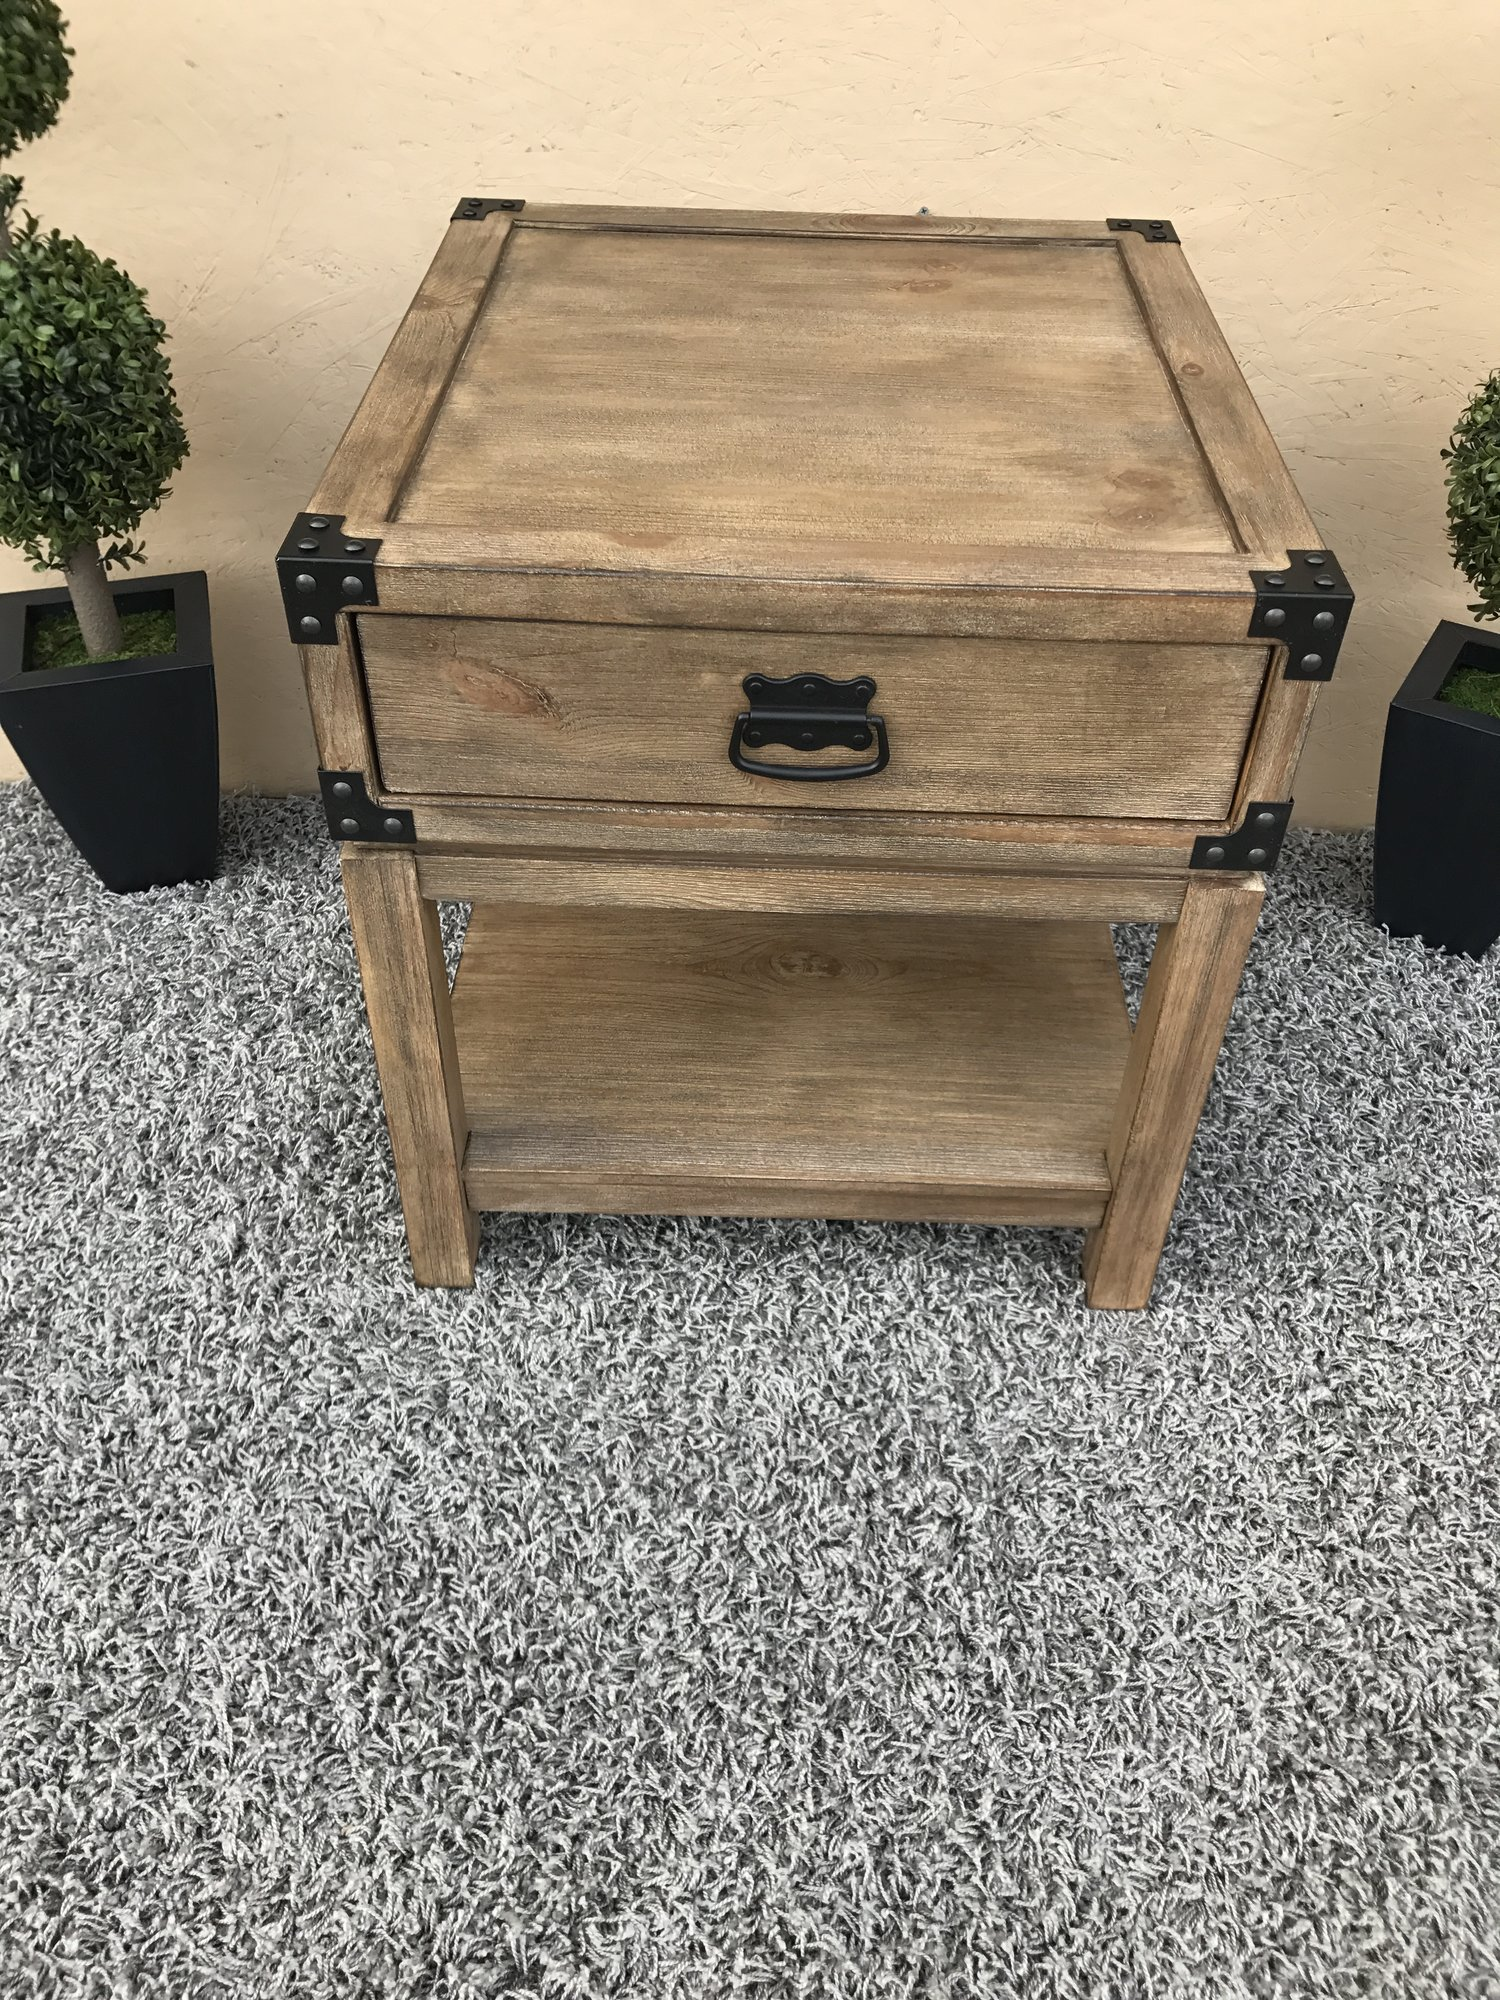 sold treasure trove accents carmel burnished natural finish trunk img accent end table carpet door threshold half moon glass solid marble coffee wood and metal furniture ashley